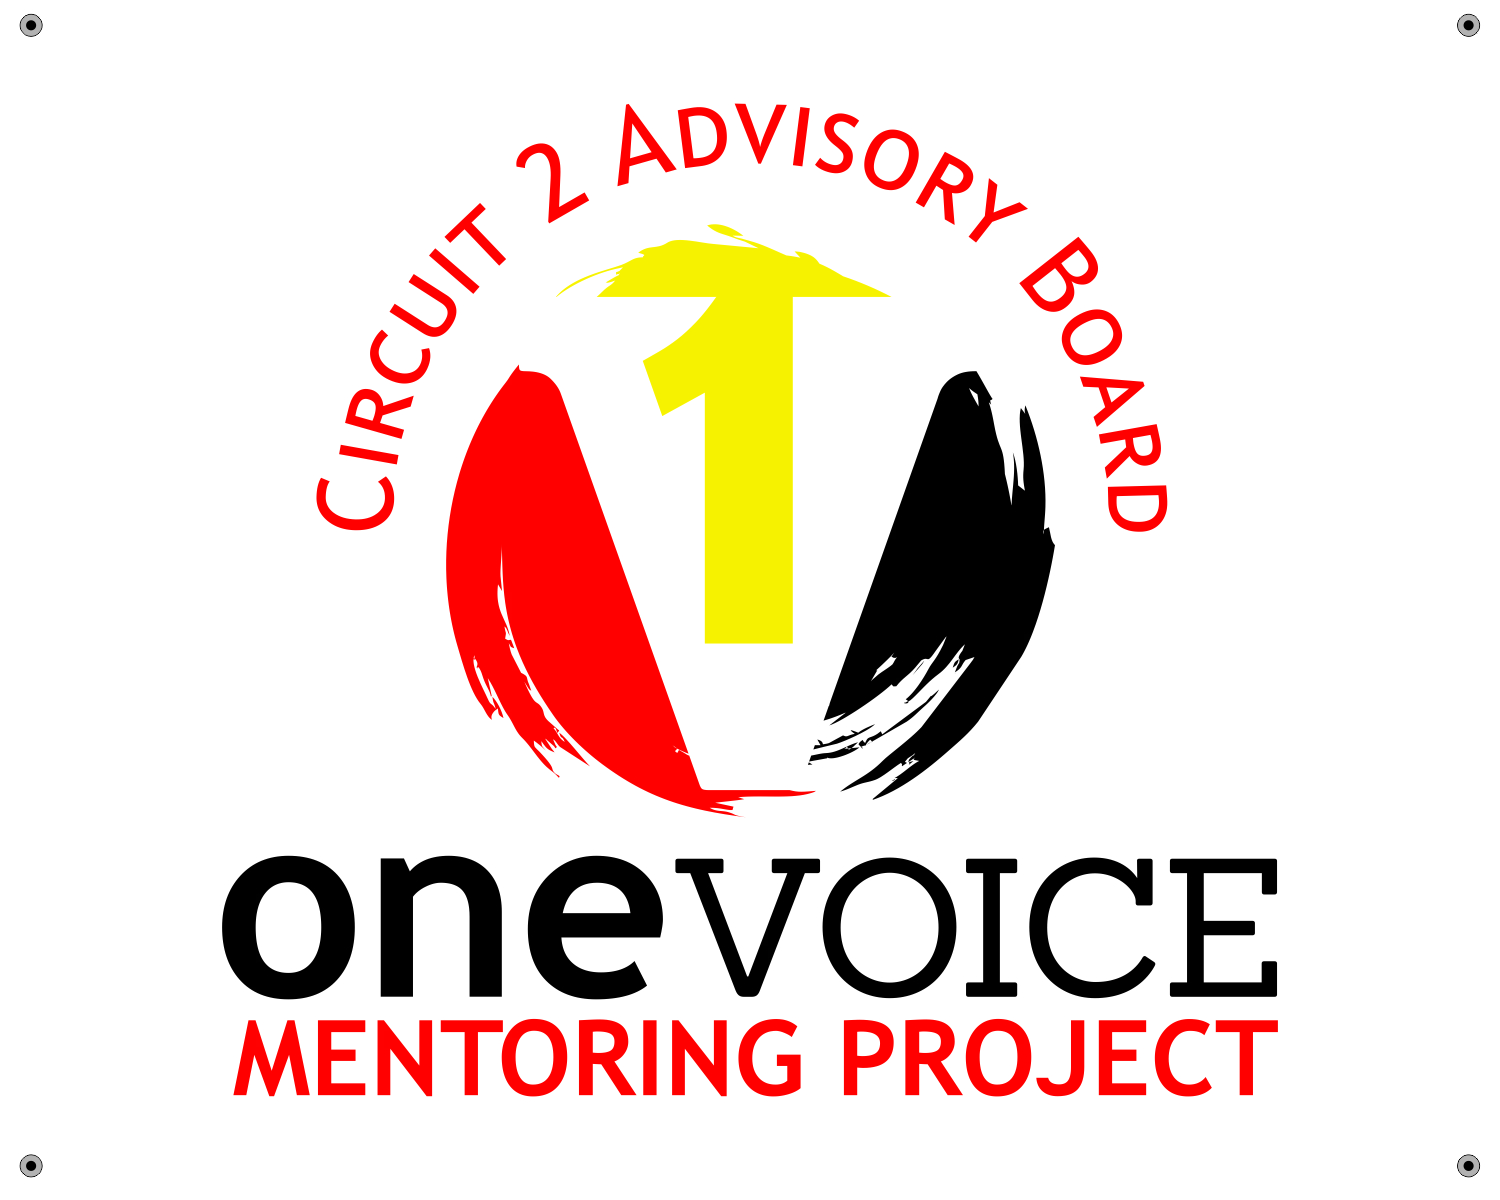 One Voice Mentoring Project has made a huge impact in the lives of probation youth in the Tallahassee, Florida area.